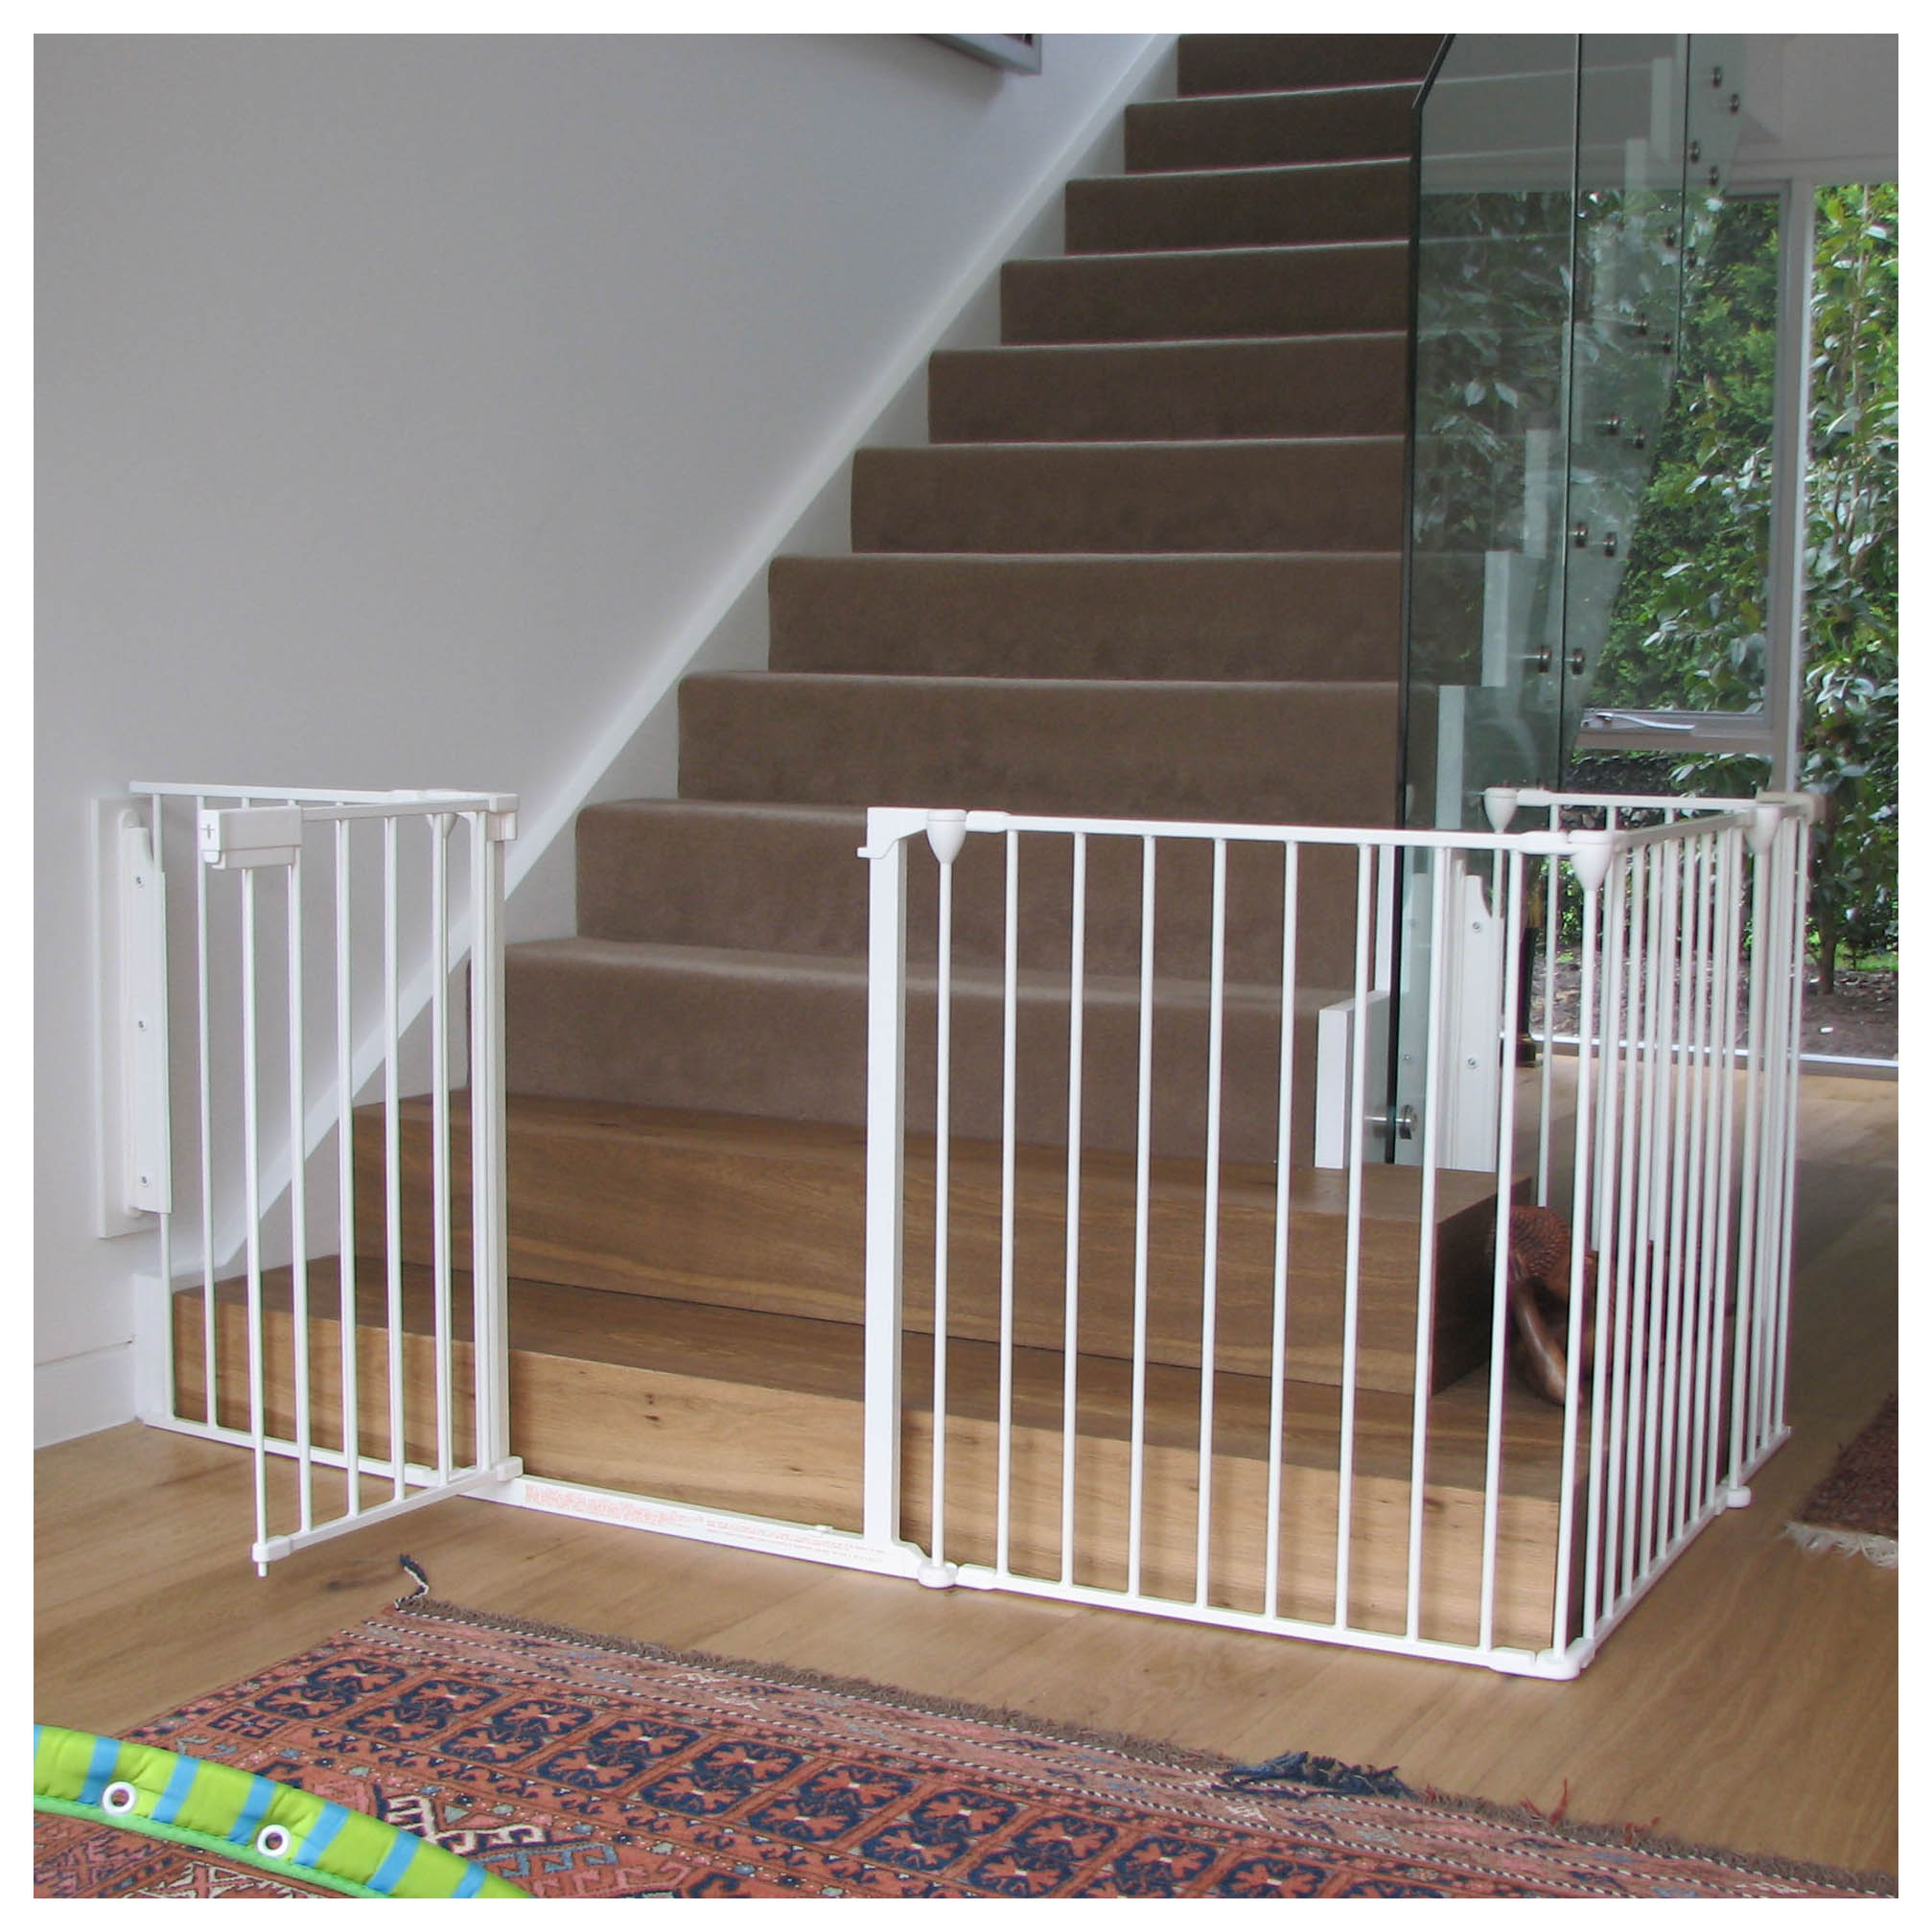 Le Meilleur Good Child Safety Gates For Stairs Homesfeed Ce Mois Ci